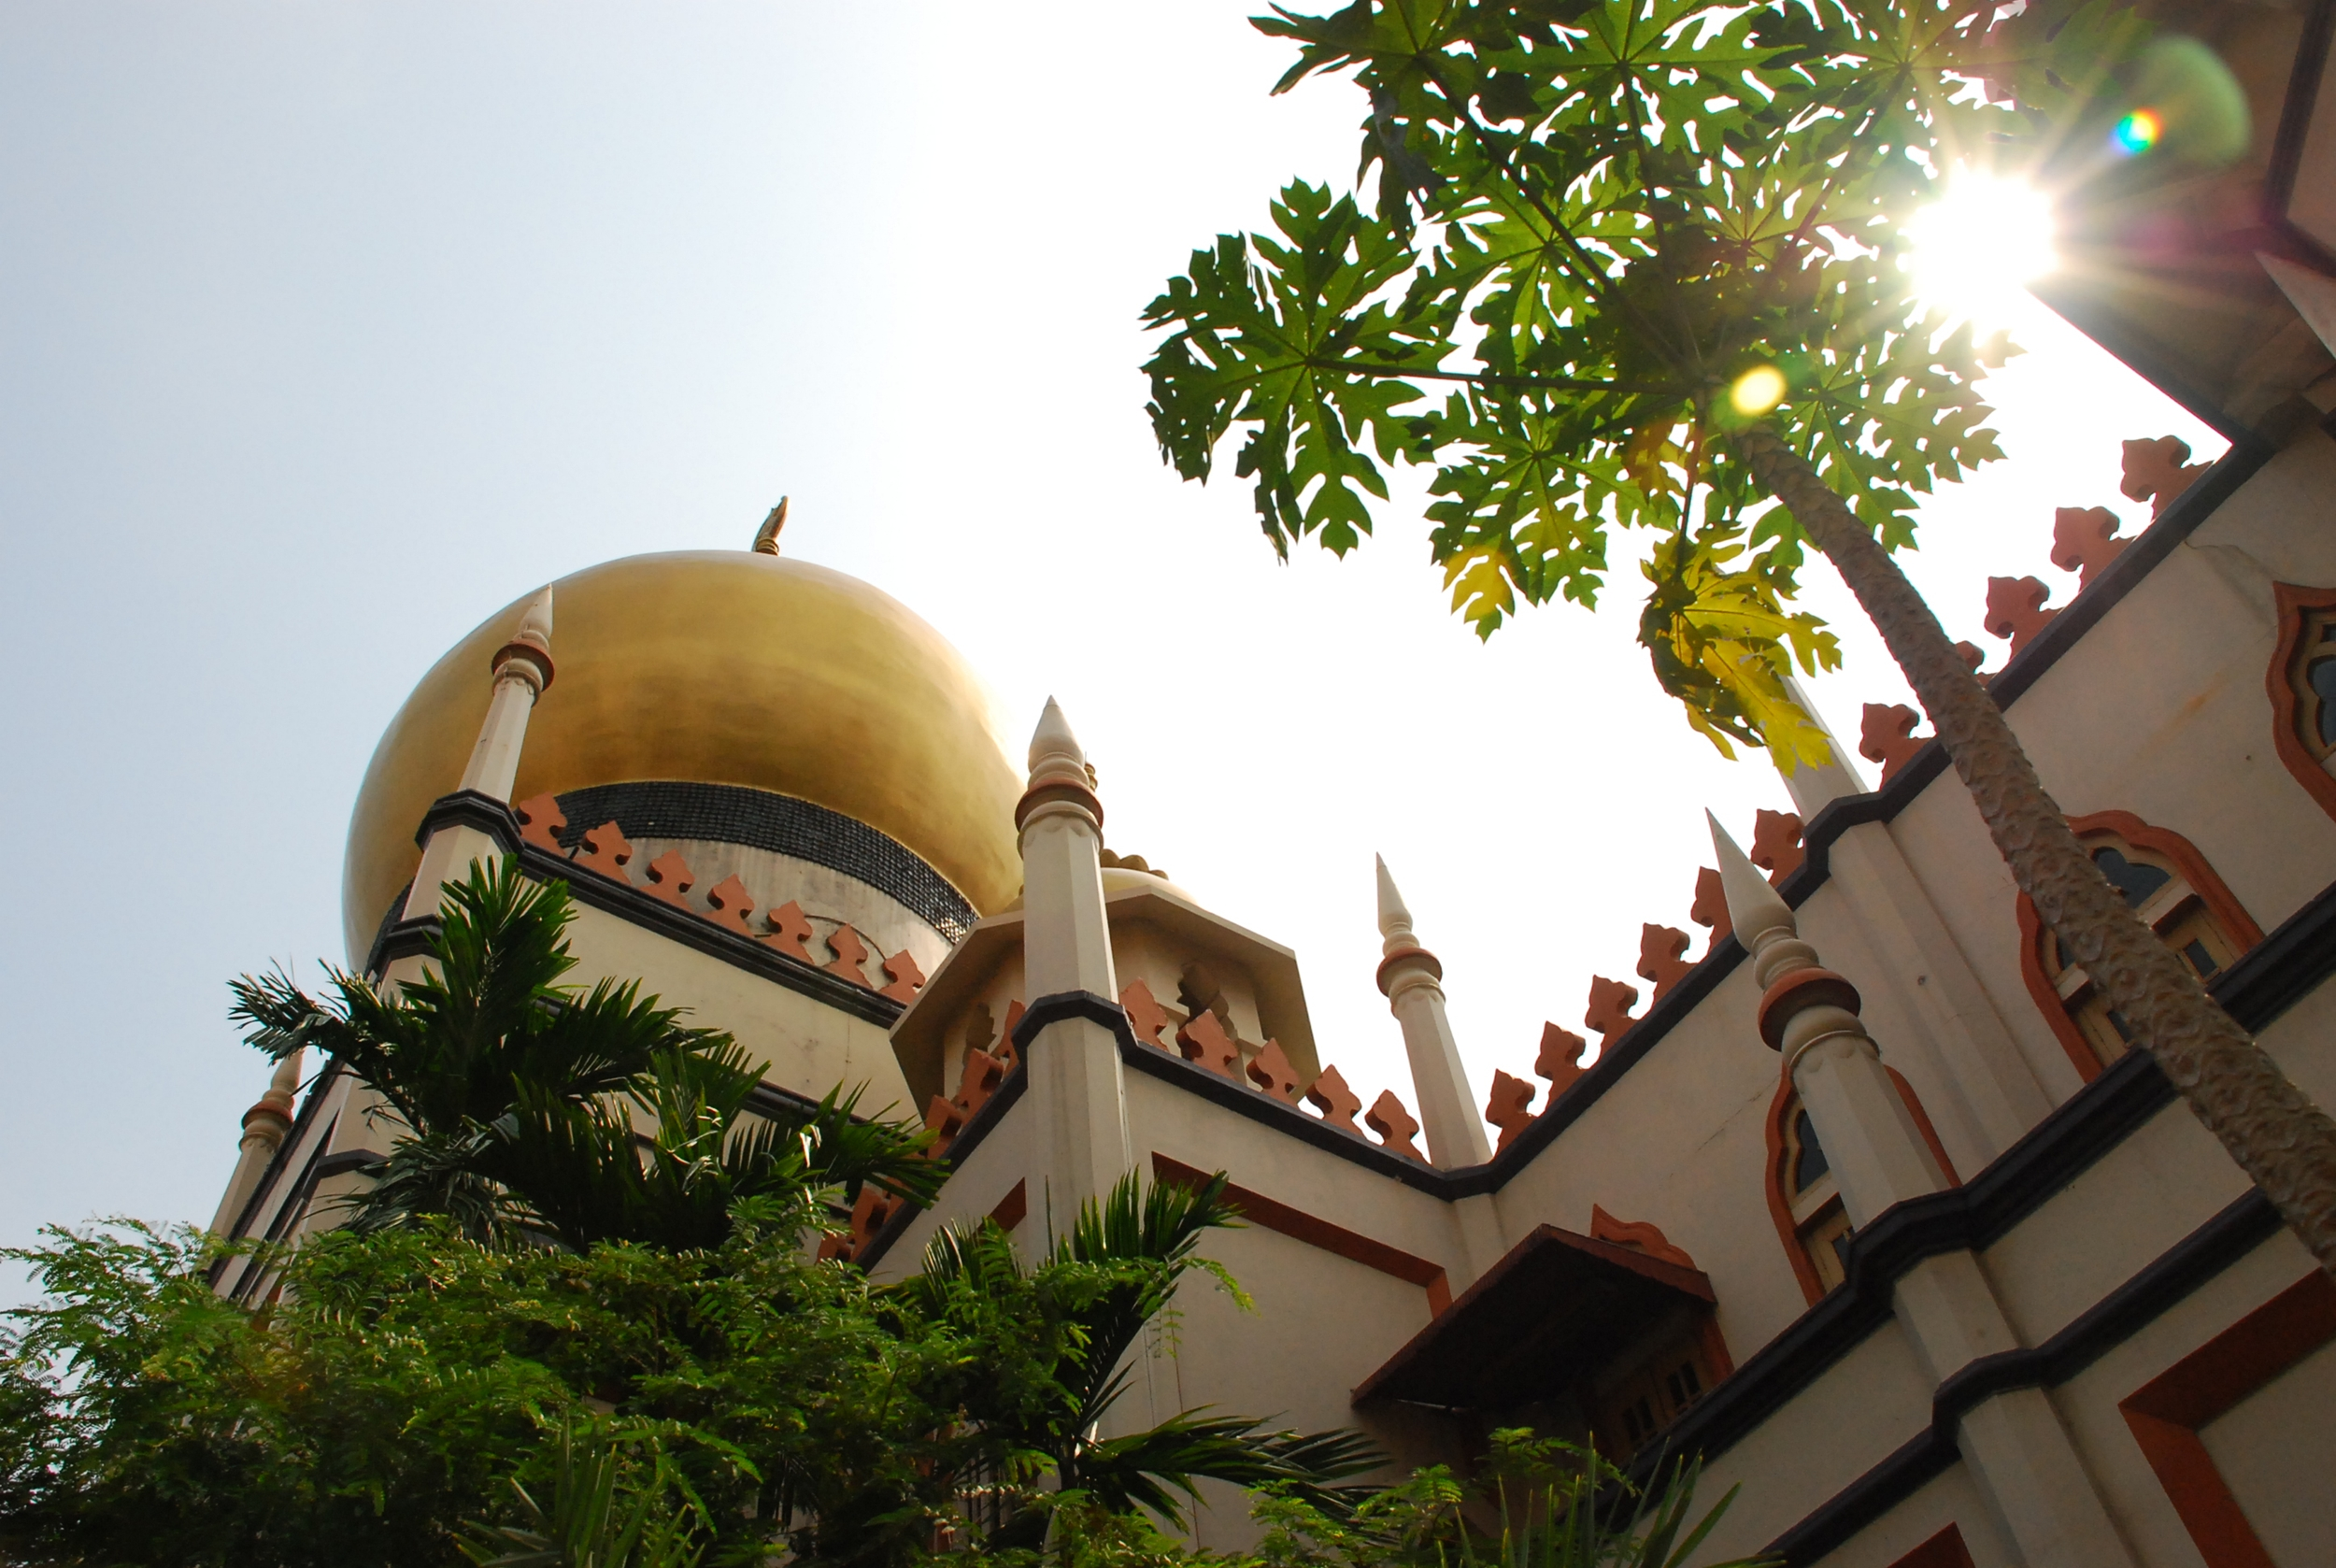 Sultan Mosque in Kampong Glam. Photo courtesy: Singapore Tourism Board